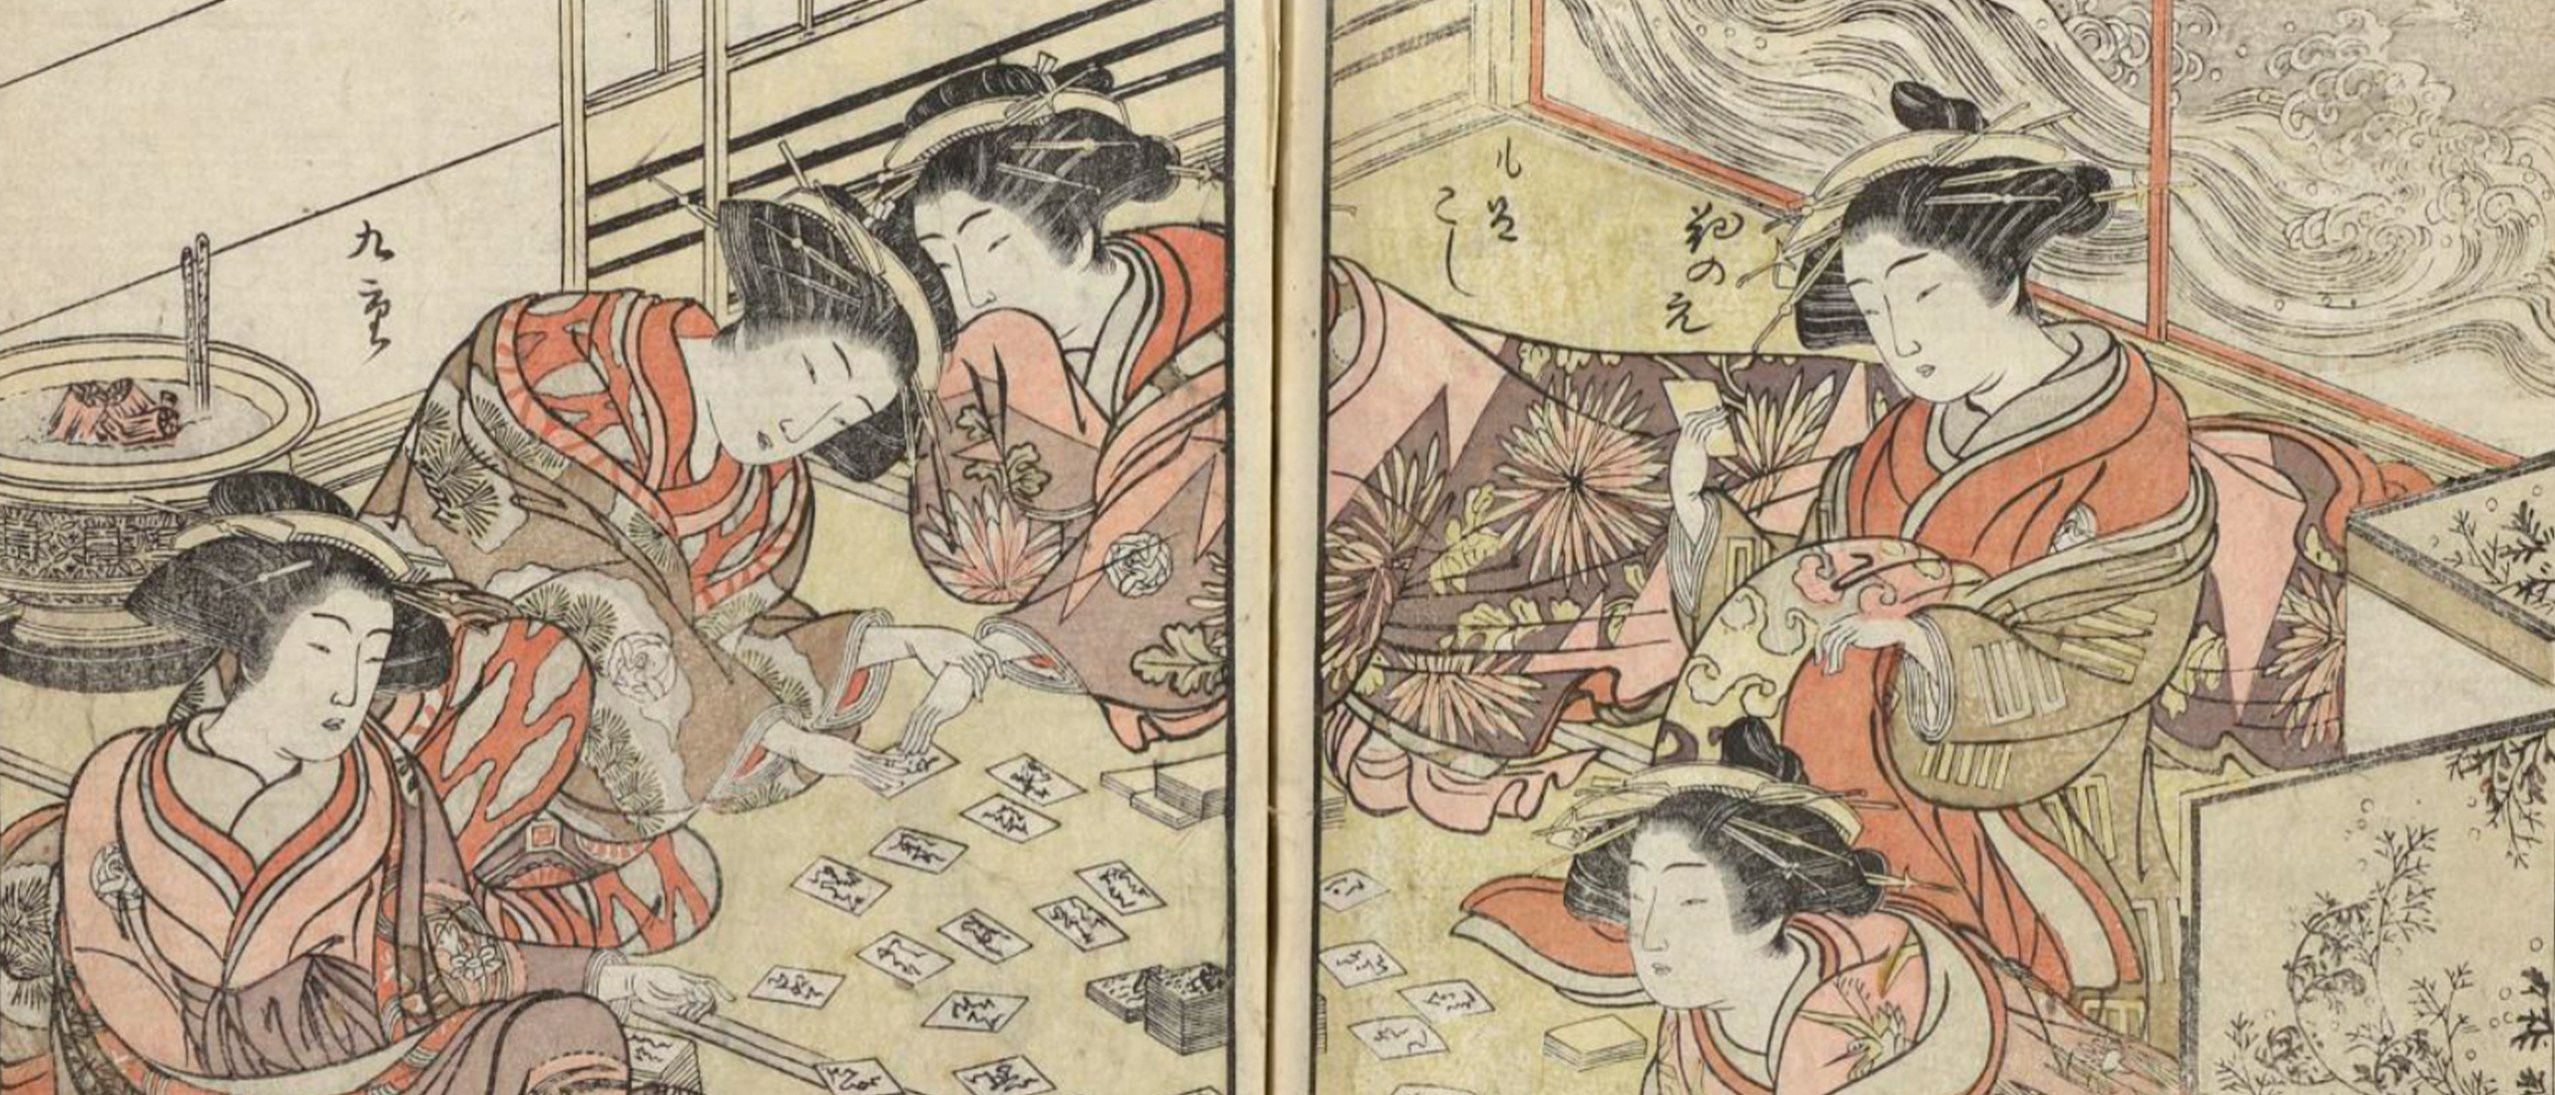 Wood-block printed image depicting several women wearing intricately patterned, layered kimono, and decadent hair updos, playing cards. The screen door or wall behind them depicts waves with birds flying above. Incense burns in the oposite corner. The image appears in hues of yellow, brown, orange, pink, light brown, and brownish purple.